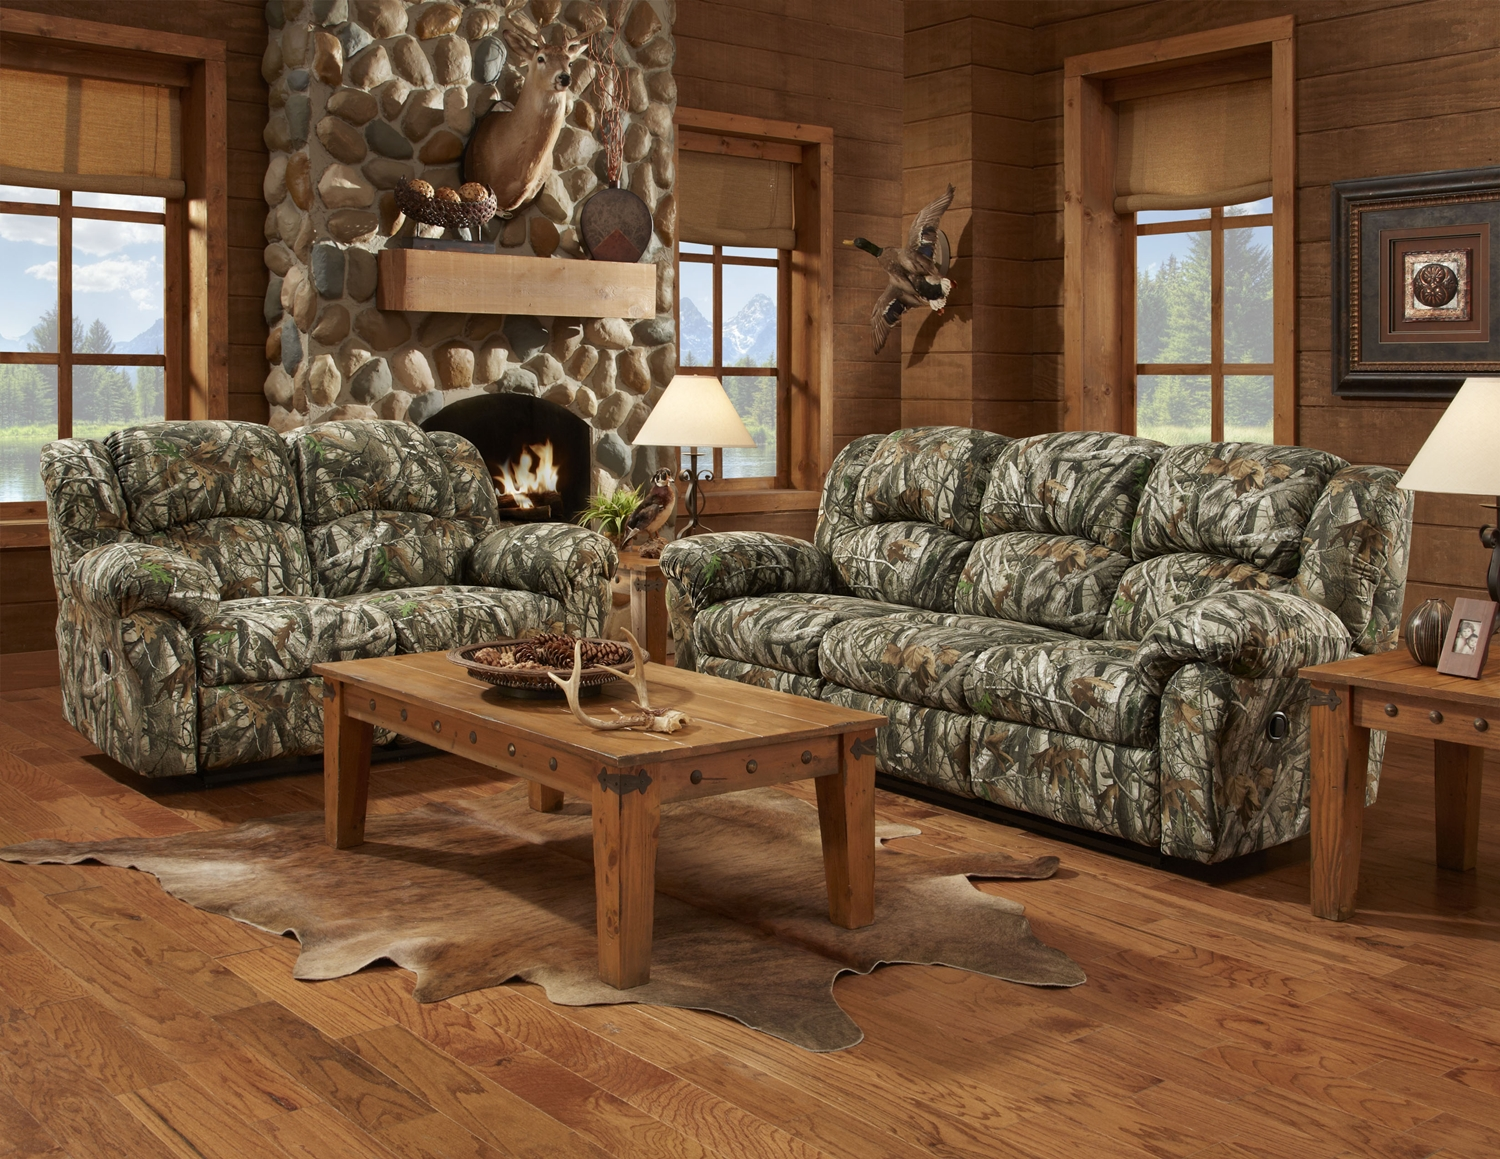 Camo Recliner Chair Mossy Oak Camouflage Reclining Motion Sofa Loveseat Camo